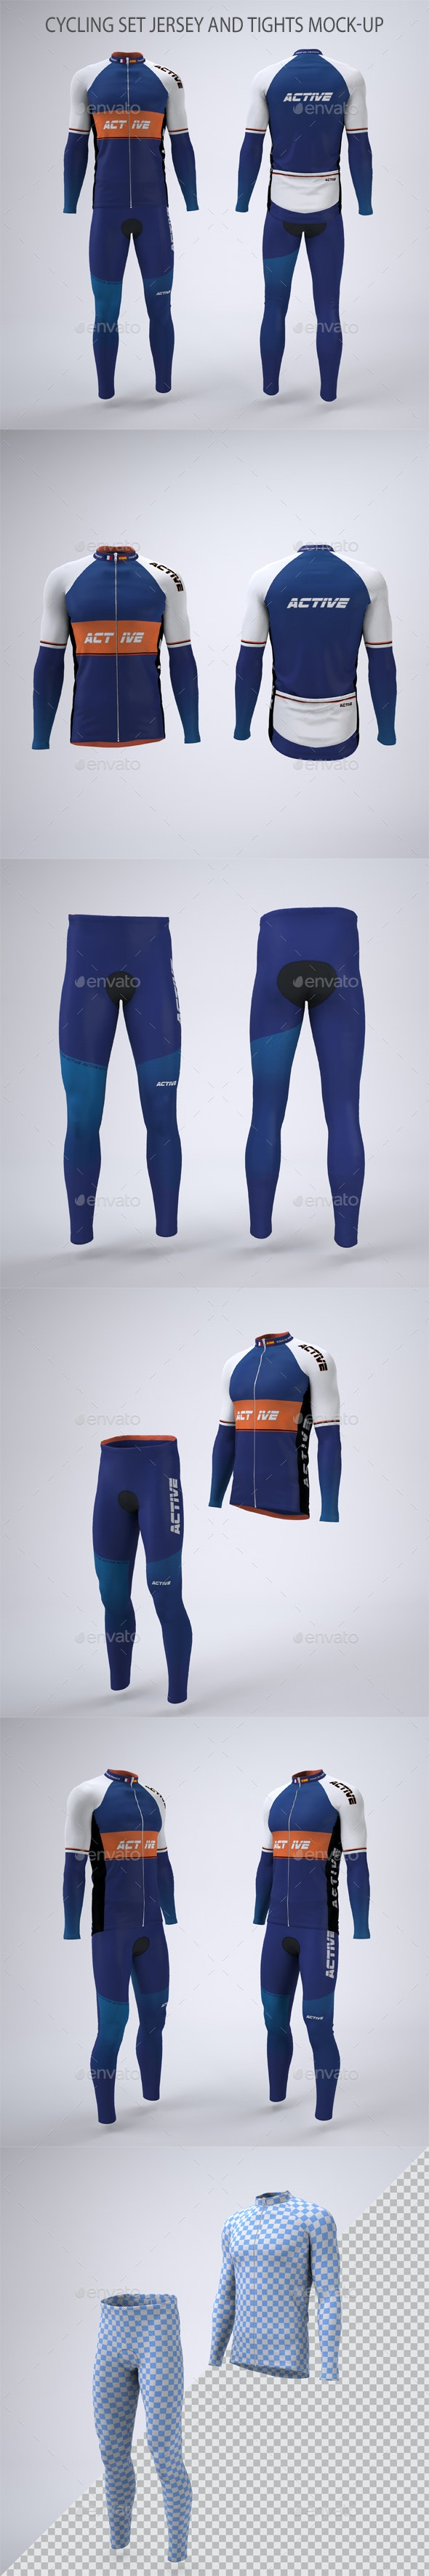 Cycling Jersey and Tights Mock-up - Apparel Product Mock-Ups